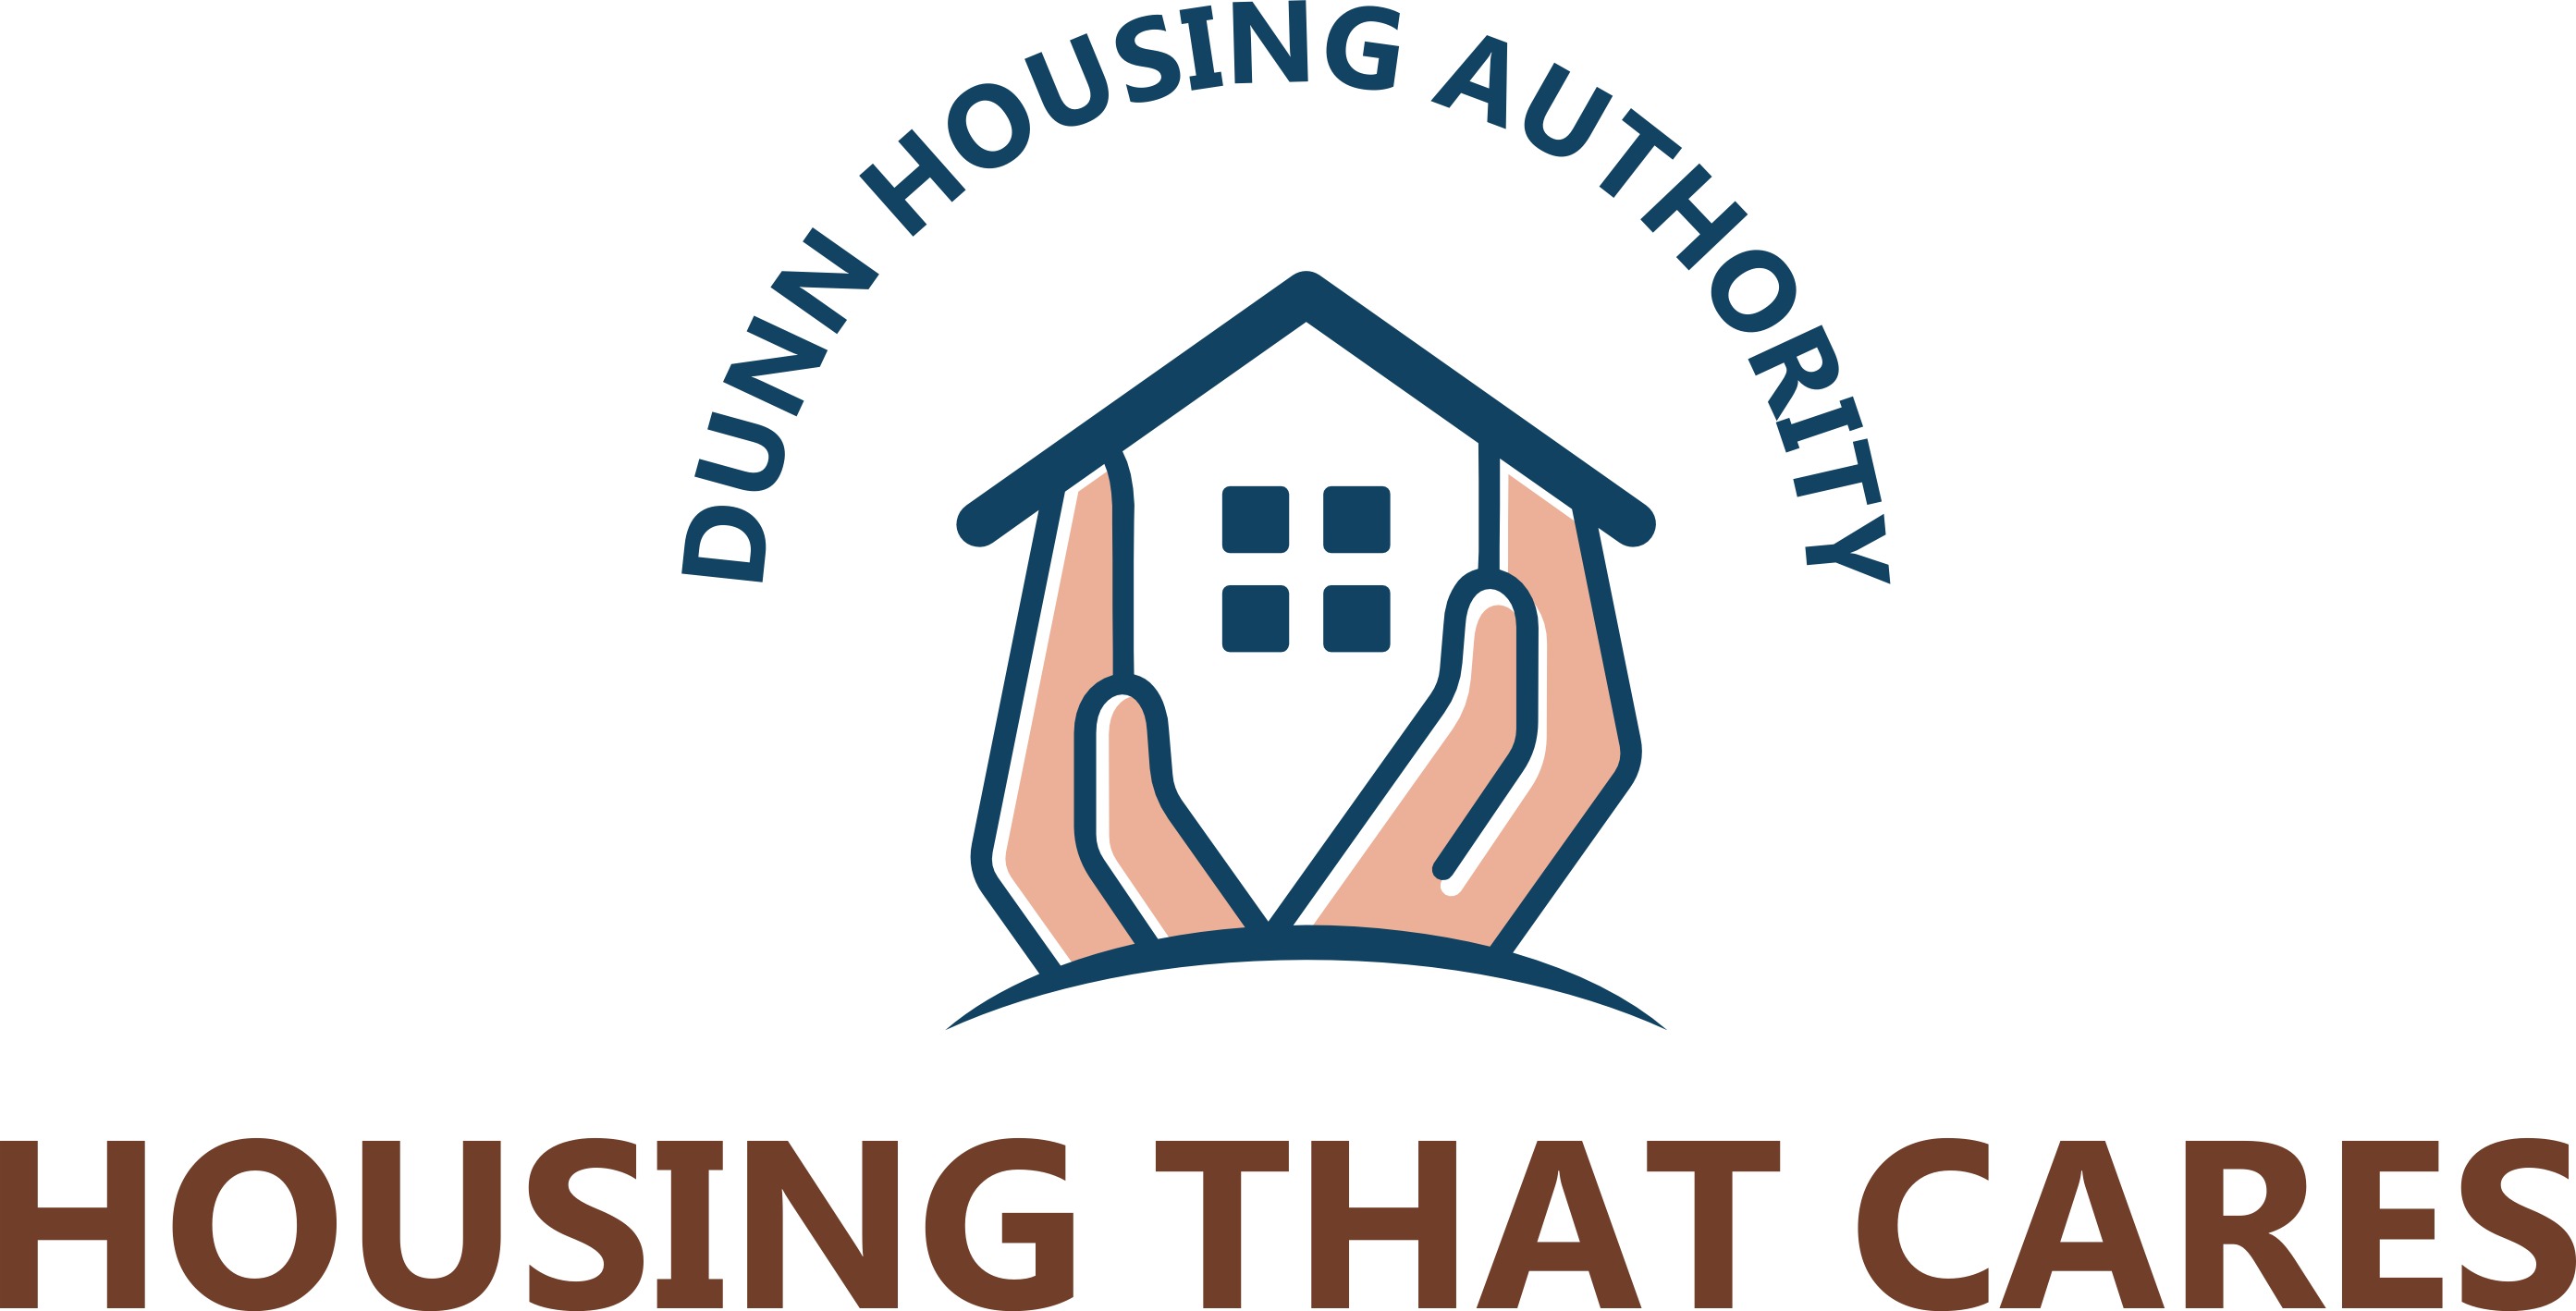 Dunn Housing Authority